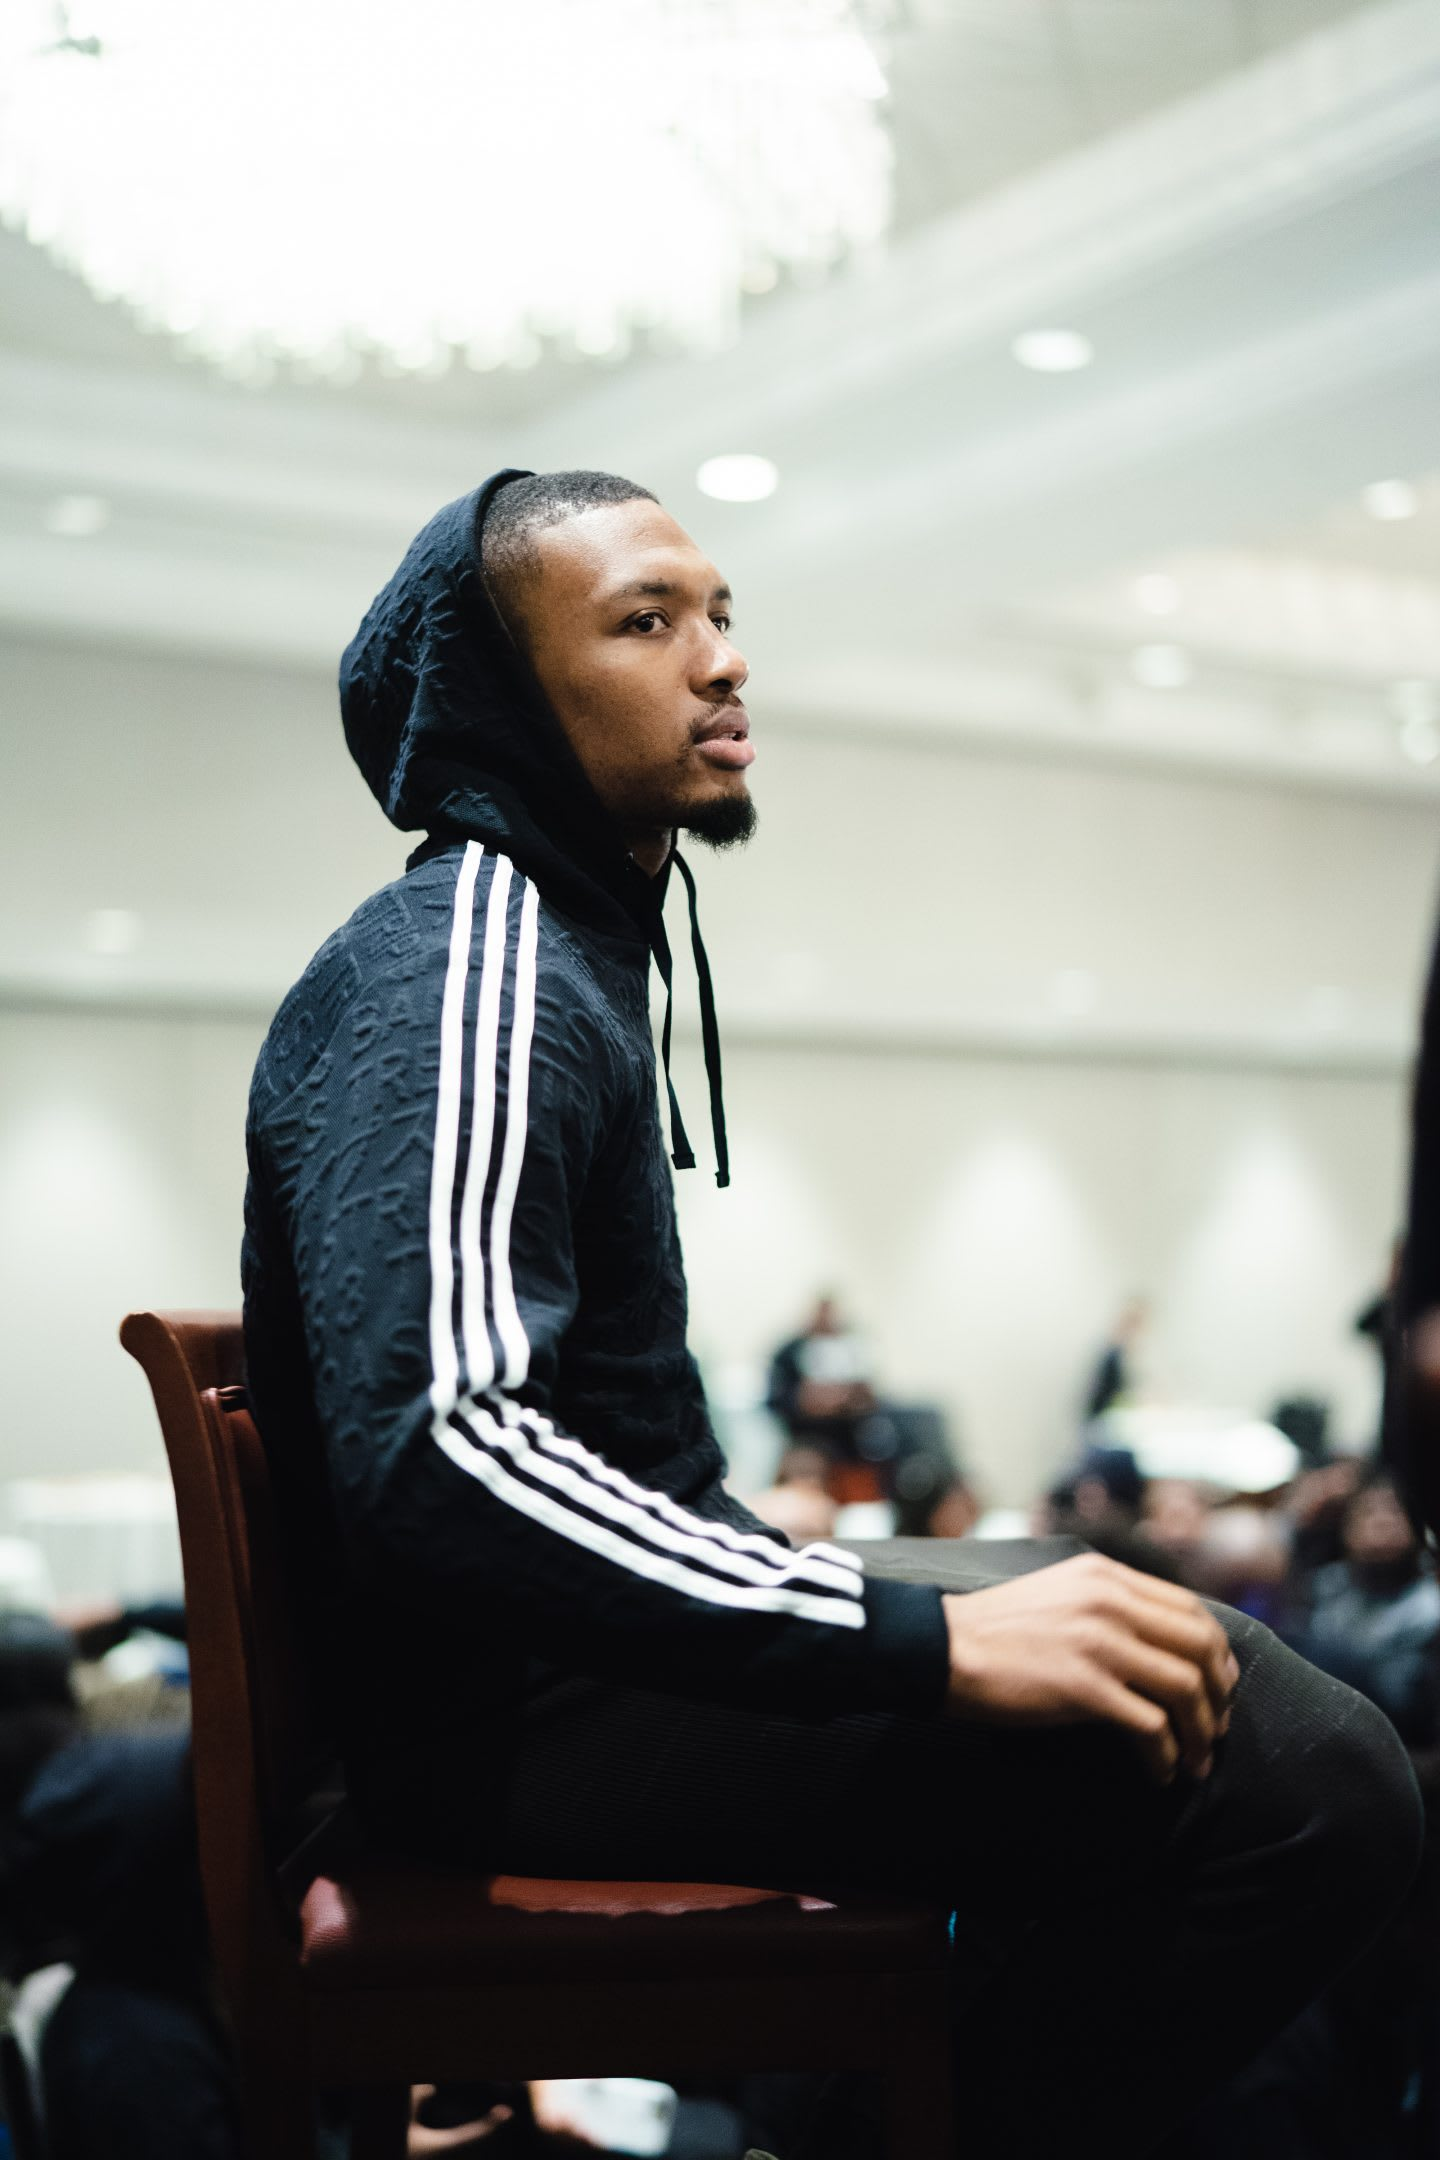 US basketball player Damian Lillard sitting on a chair wearing a black adidas hoodie. Dame, Dame Time, basketball, sports, leadership, role model, icon, GamePlan A.